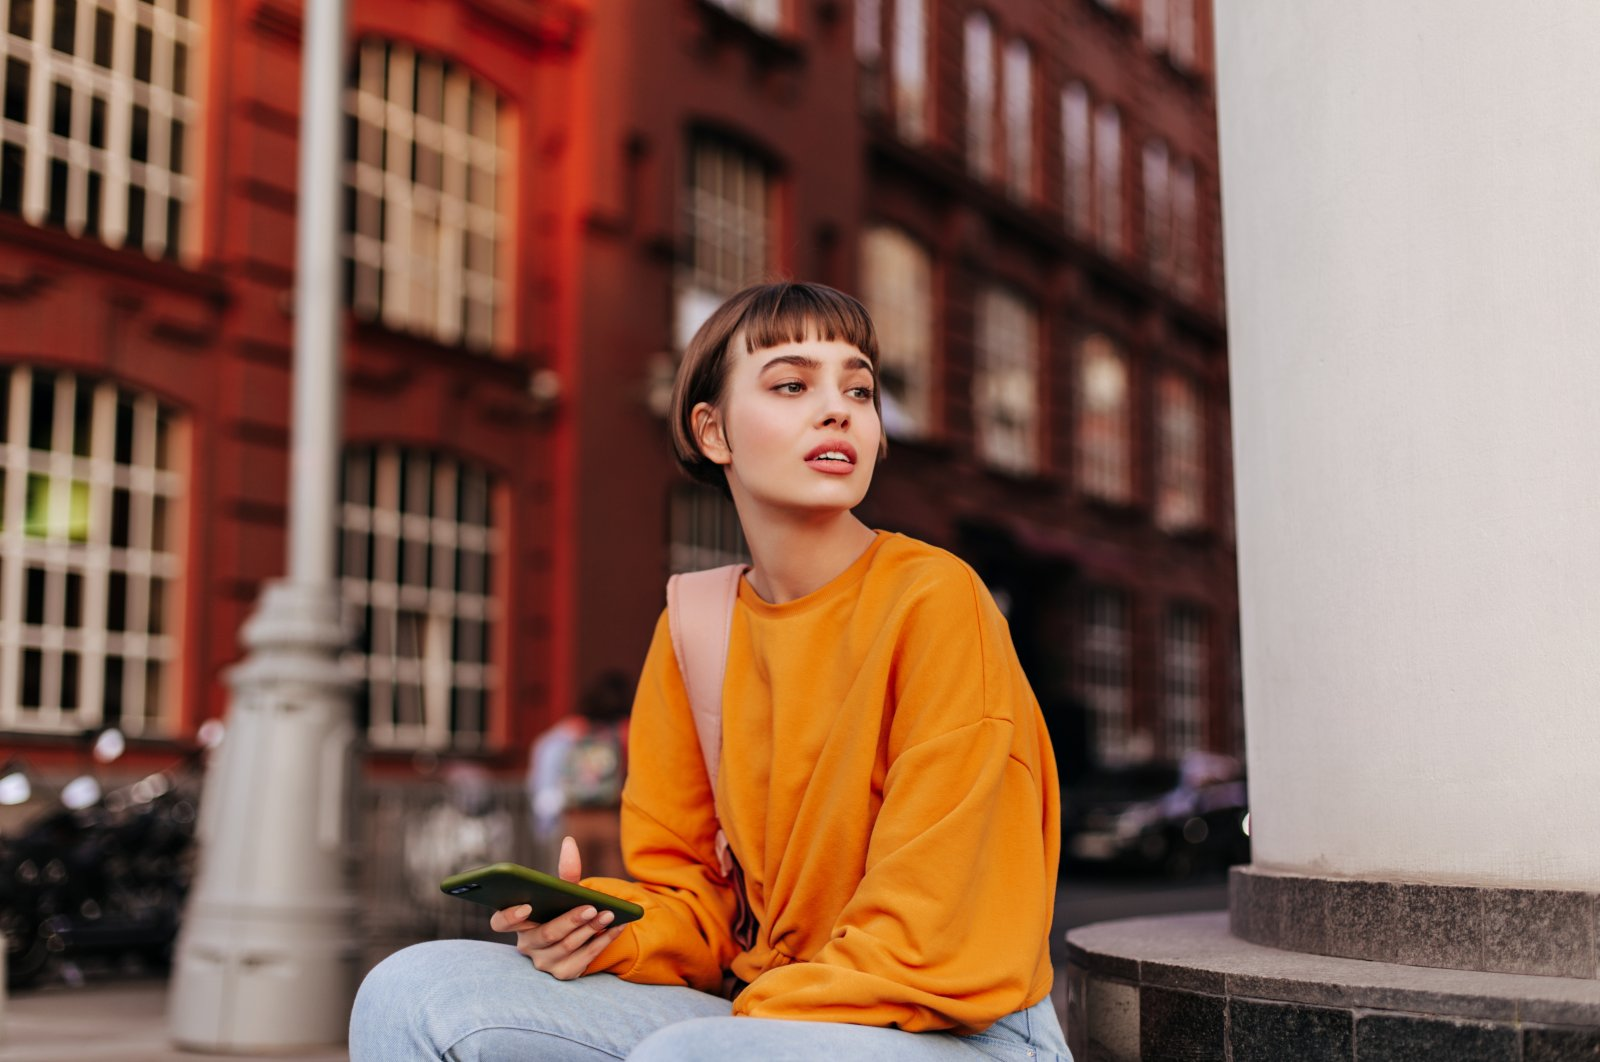 Cheerful young girl in an orange sweatshirt and jeans walks outdoors. (Shutterstock Photo)